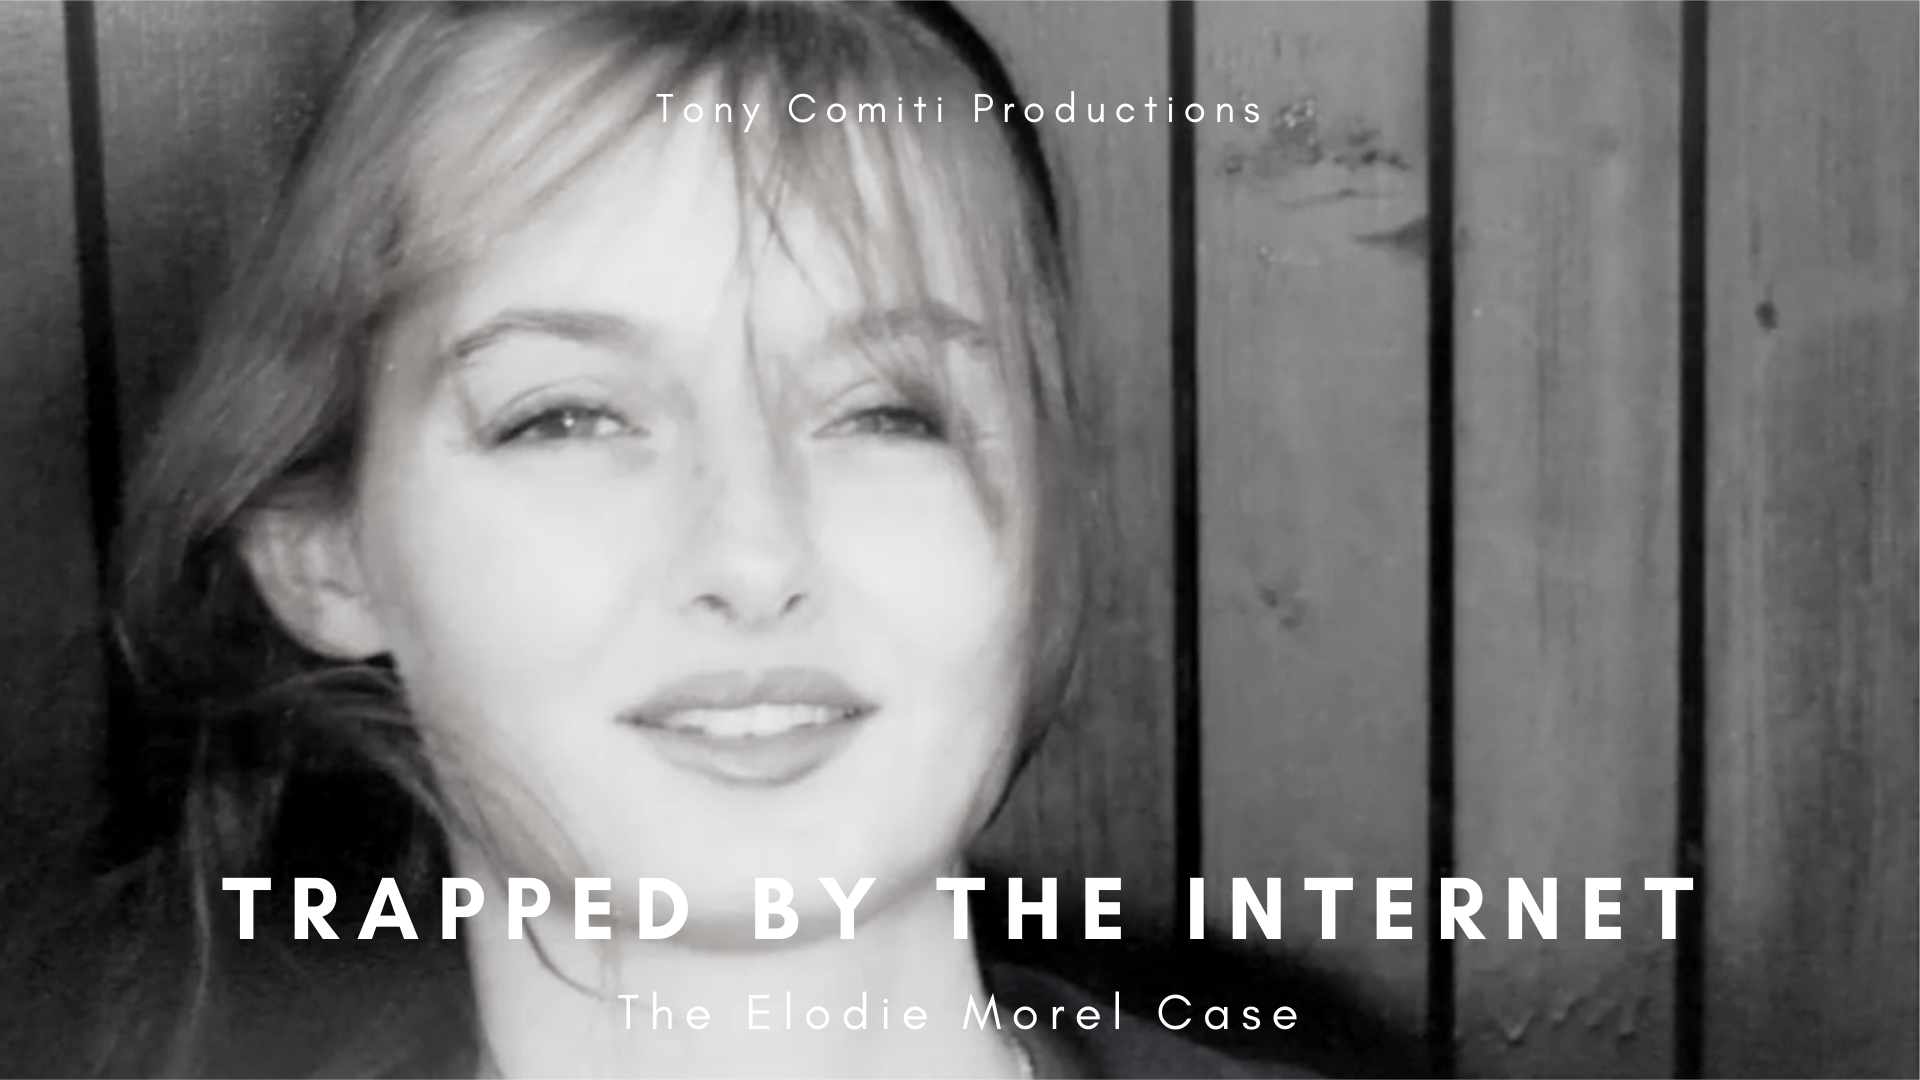 Trapped by the Internet - The Elodie Morel Case